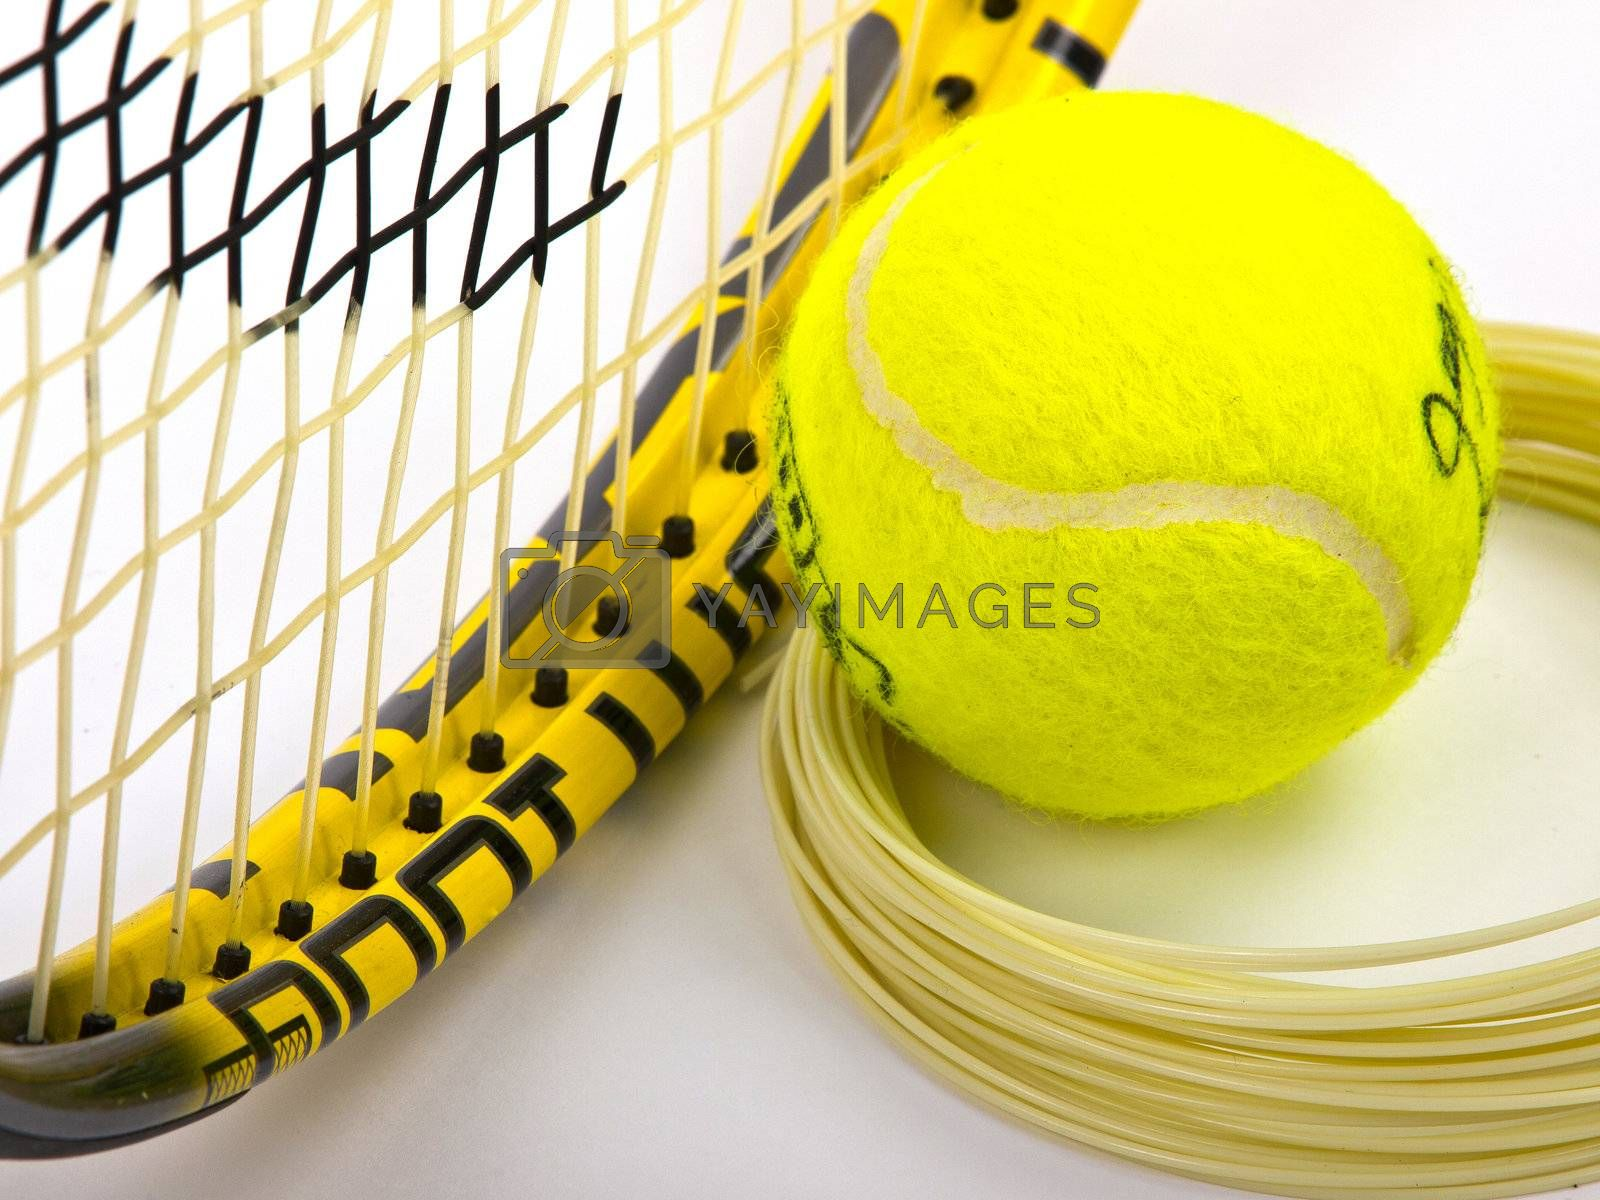 tennis racket string and yellow ball